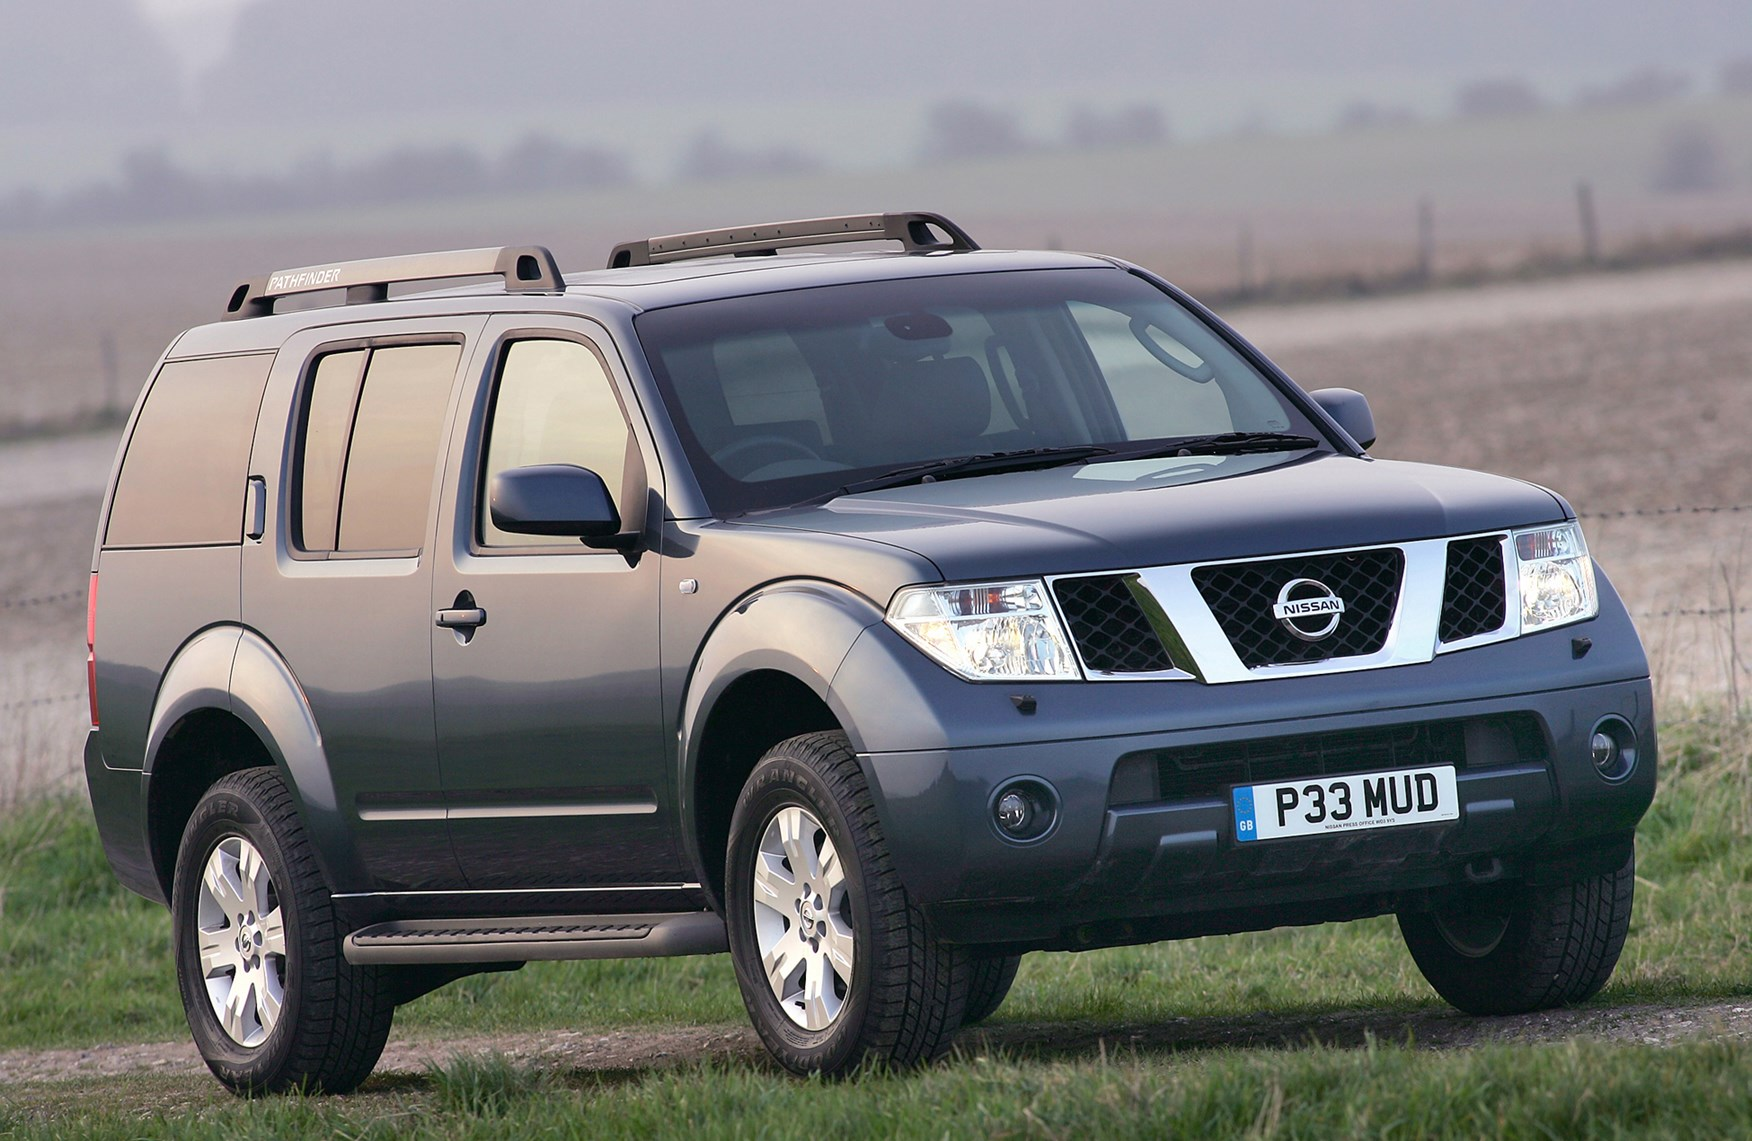 Nissan Pathfinder Station Wagon Review (2005 - 2014)